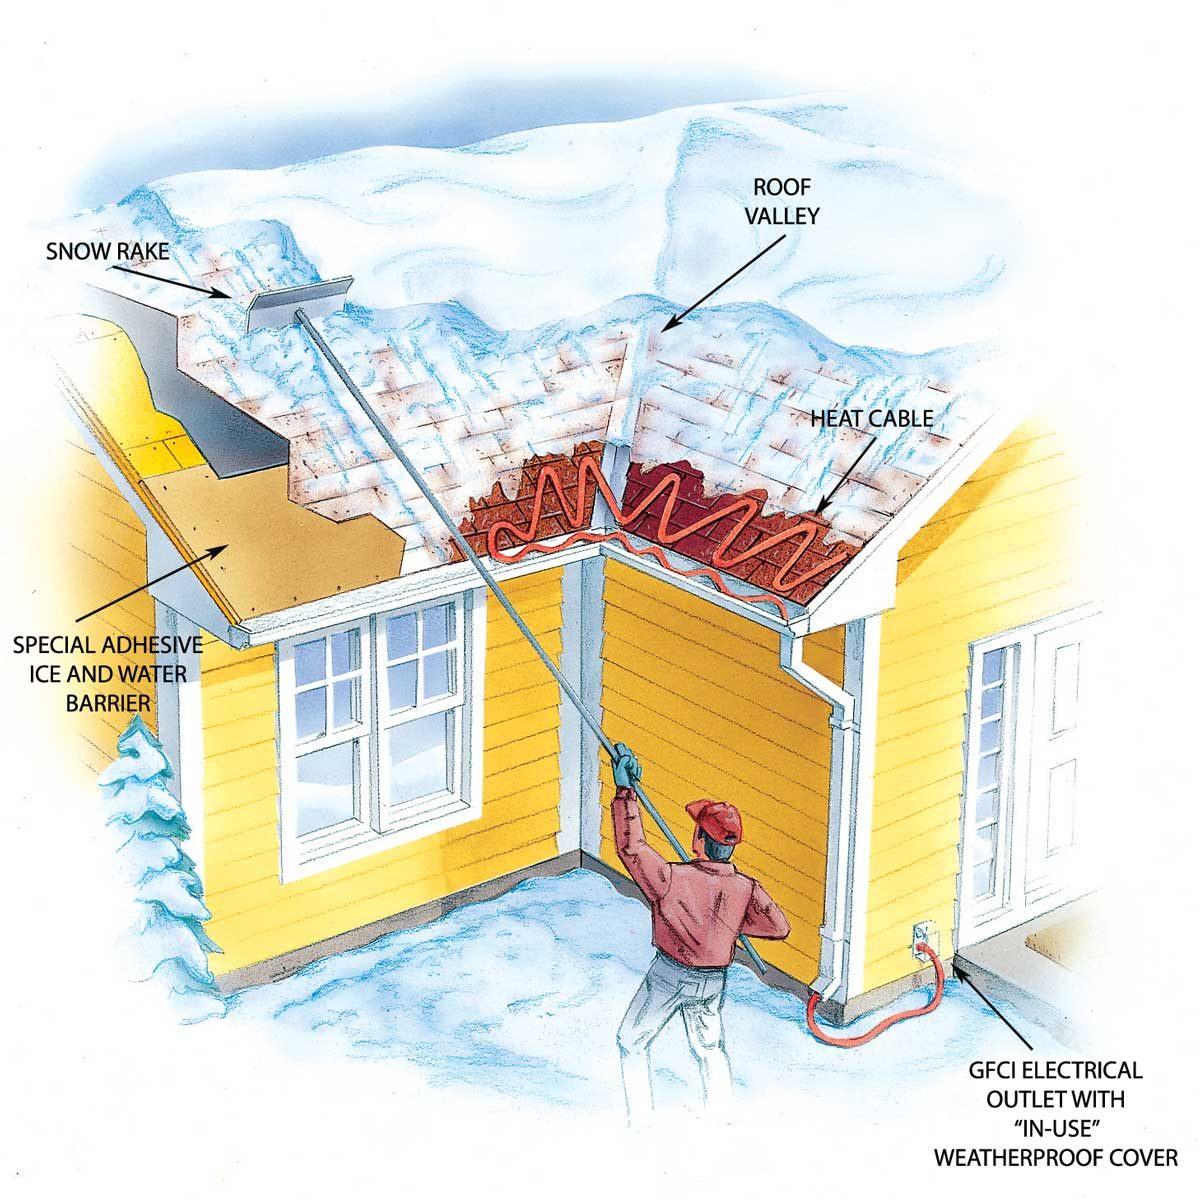 Ice dam illustration: scraping snow from roof